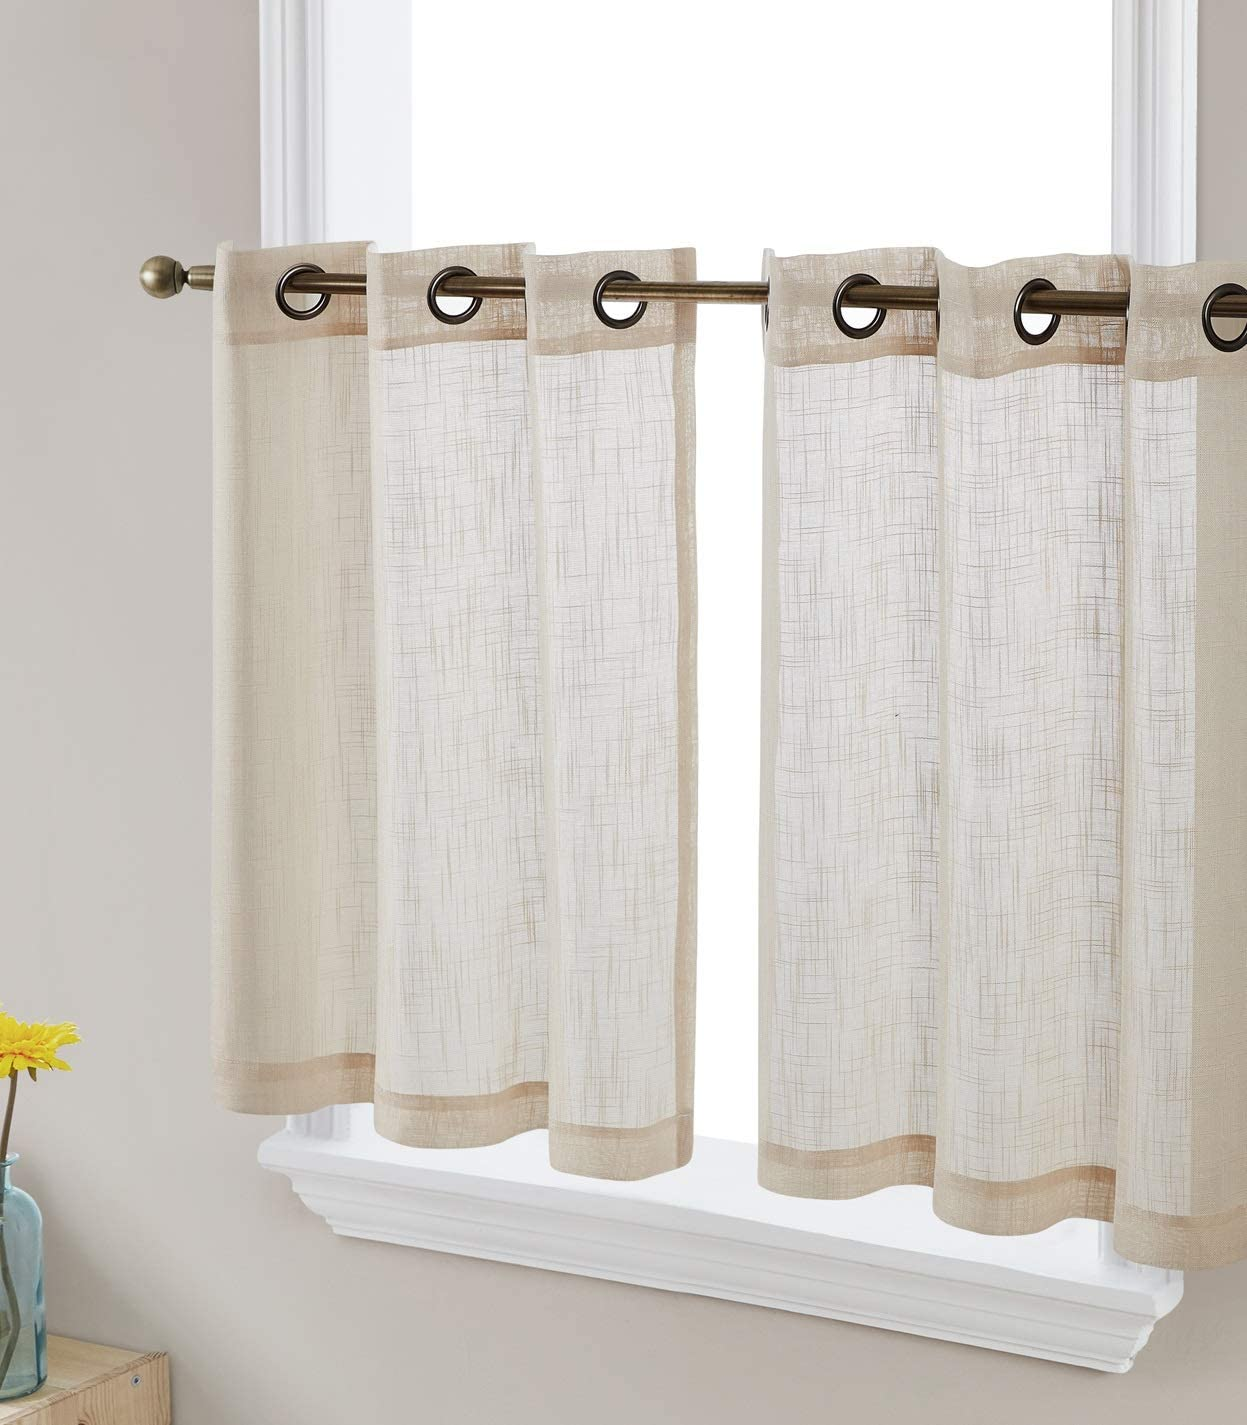 HLC.ME Abbey Faux Linen Textured Semi Sheer Privacy Light Filtering Transparent Grommet Short Thick Cafe Curtain Tiers for Small Windows, Kitchen & Basement, Set of 2 (35 W x 2 4 L, Beige)